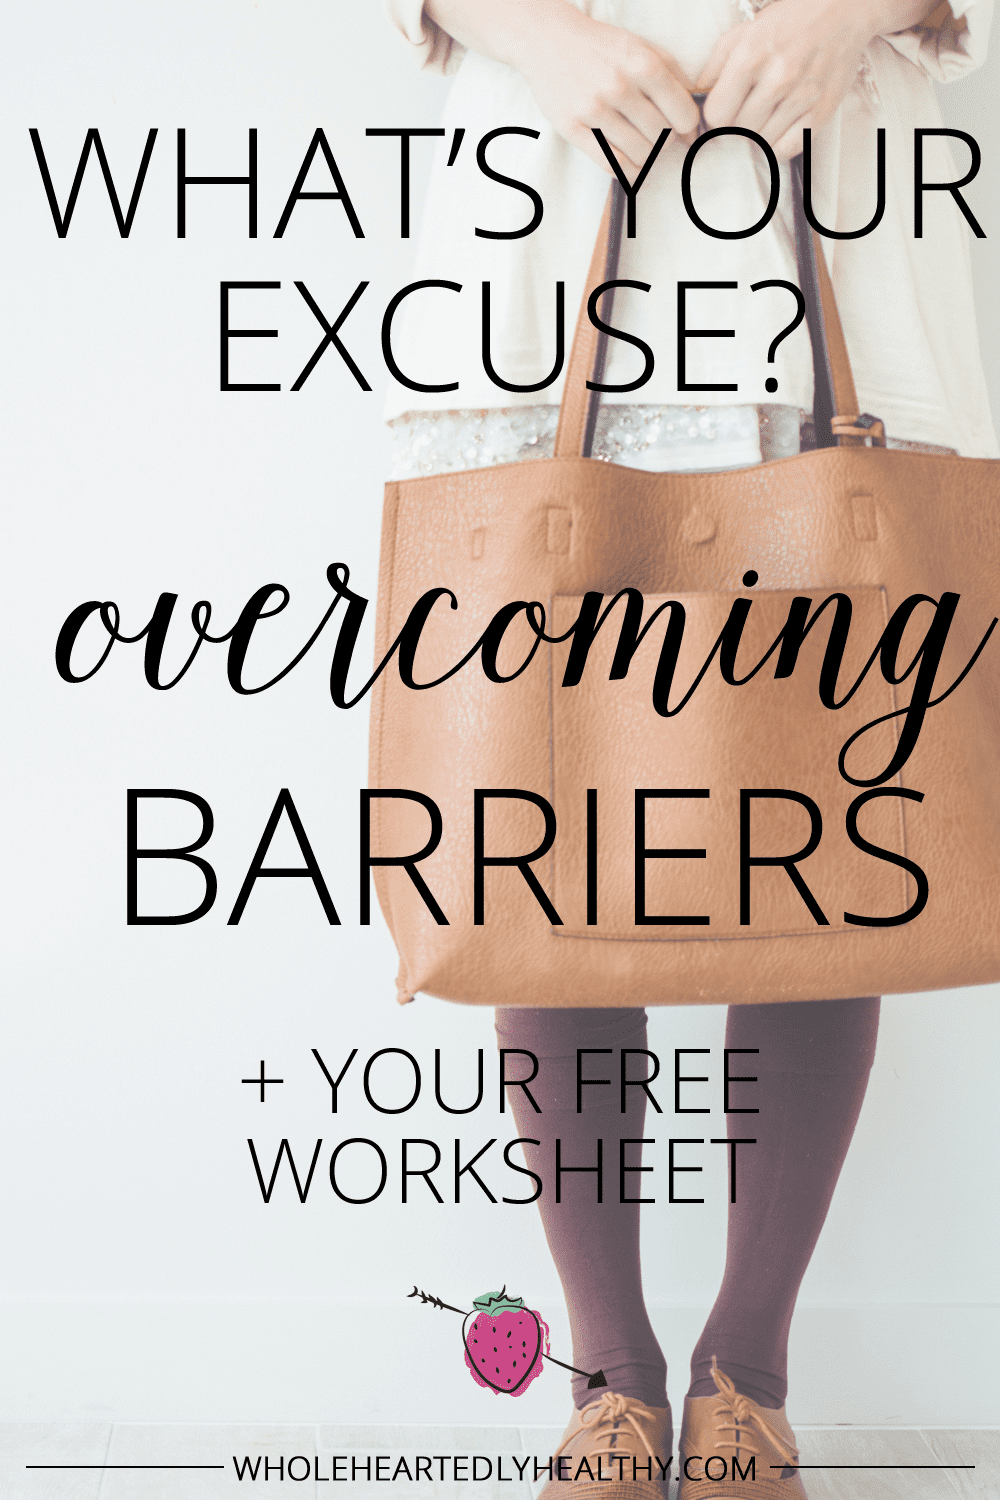 Overcoming your barriers